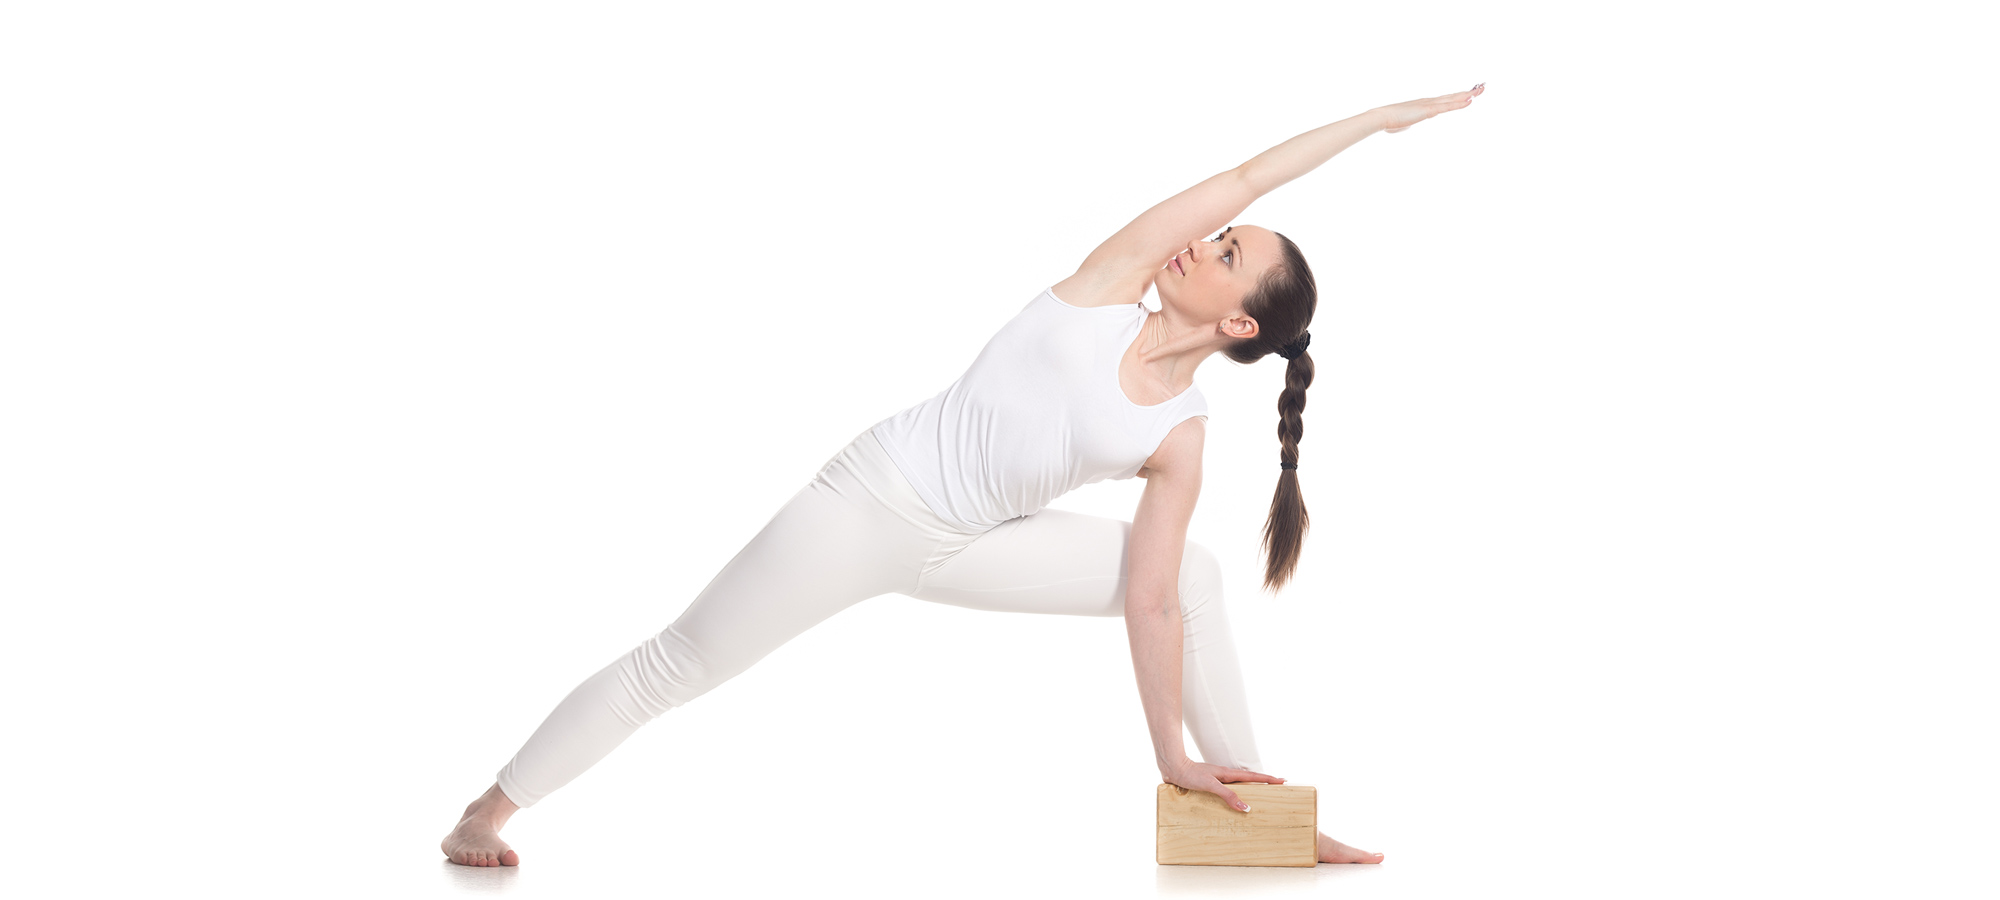 Basic Poses Of Iyengar Yoga